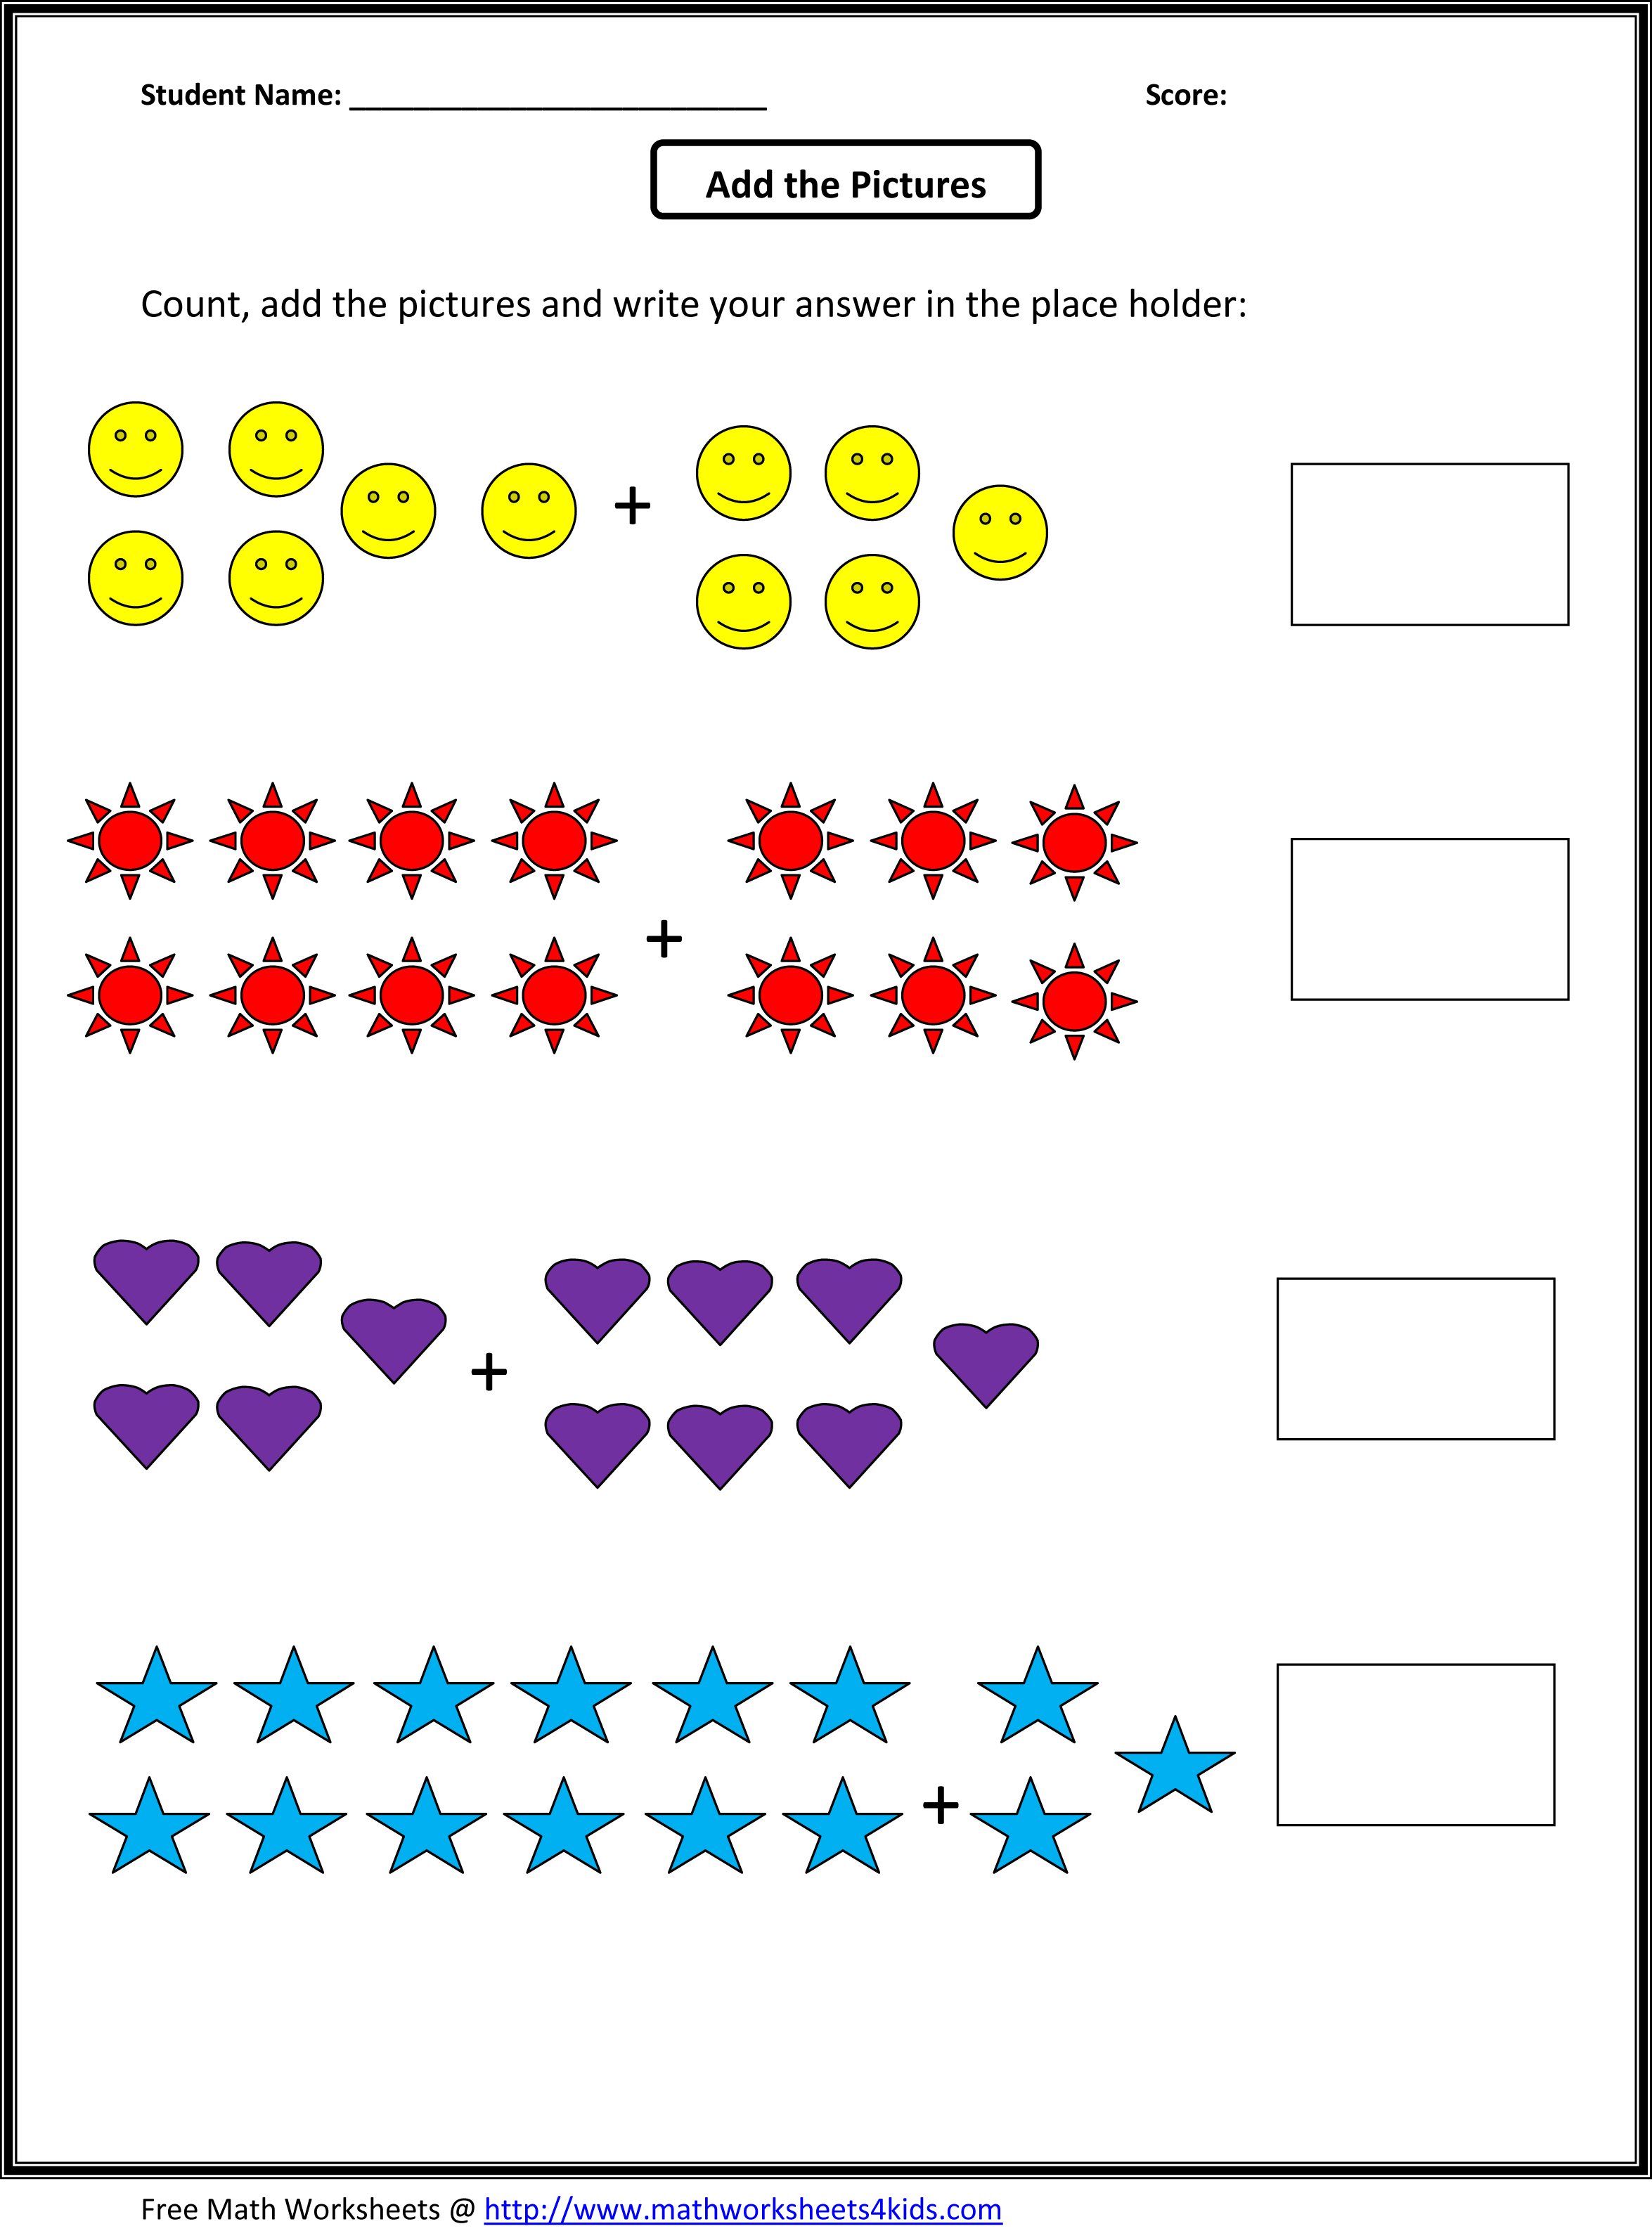 Weirdmailus  Unusual Grade  Maths Worksheet  Reocurent With Licious Math Worksheets For St Grade Free  Reocurent With Lovely Mood Monitoring Worksheet Also Worksheets Subject Verb Agreement In Addition Free Worksheets On Homophones And Telling The Time In English Worksheets As Well As Worksheets On Landforms Additionally Respiratory System Worksheet For Kids From Reocurentcom With Weirdmailus  Licious Grade  Maths Worksheet  Reocurent With Lovely Math Worksheets For St Grade Free  Reocurent And Unusual Mood Monitoring Worksheet Also Worksheets Subject Verb Agreement In Addition Free Worksheets On Homophones From Reocurentcom